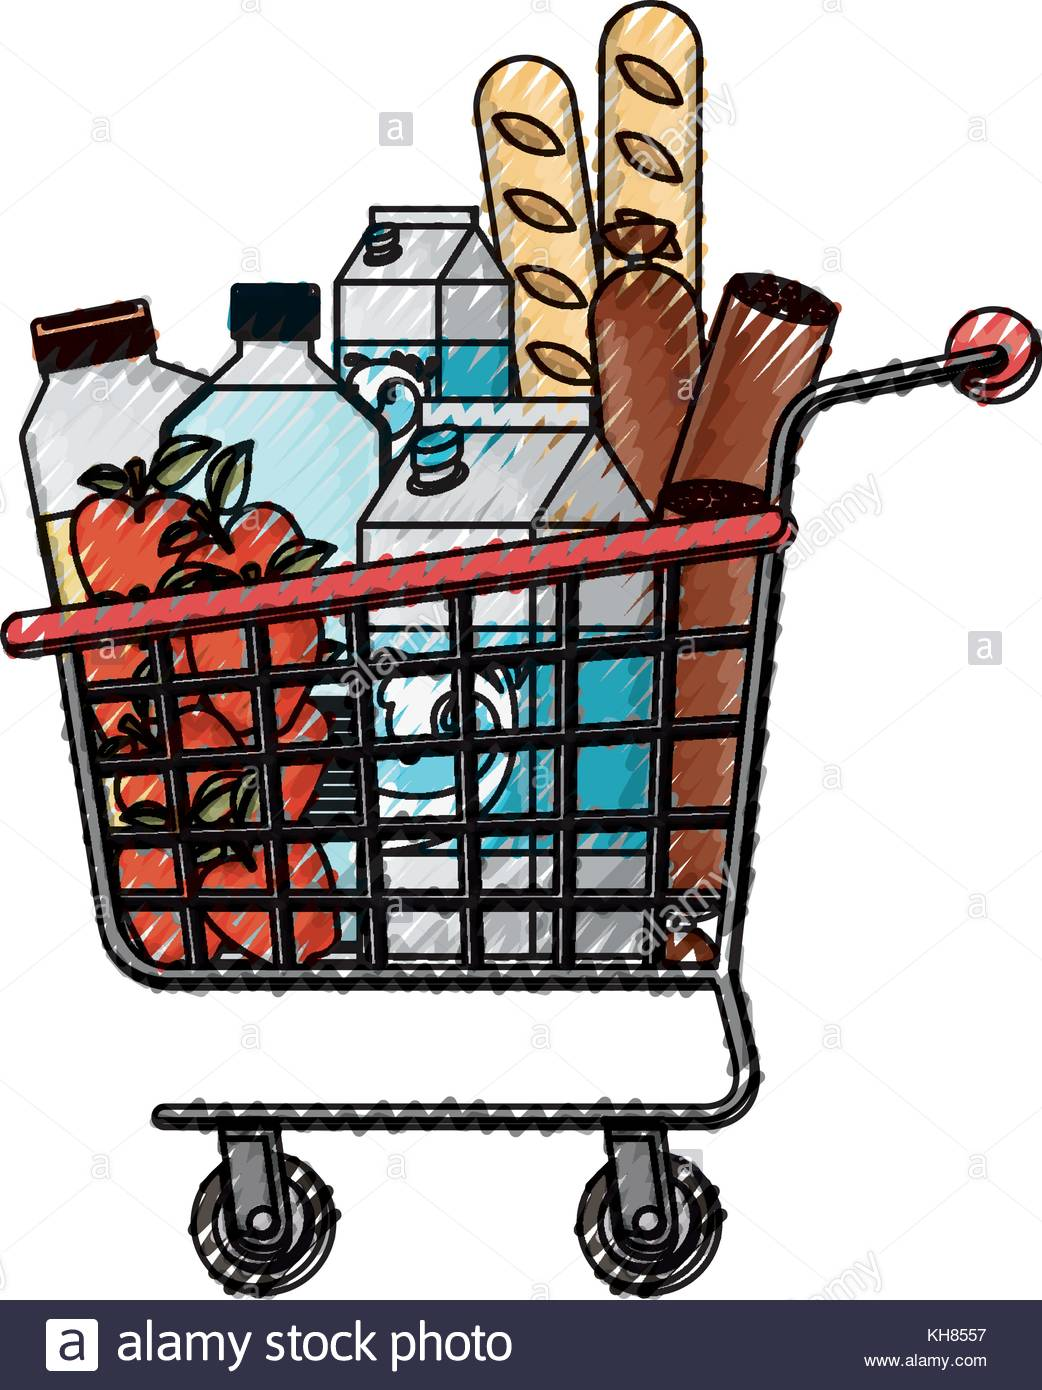 1042x1390 Supermarket Shopping Cart With Foods Sausage Bread Apples